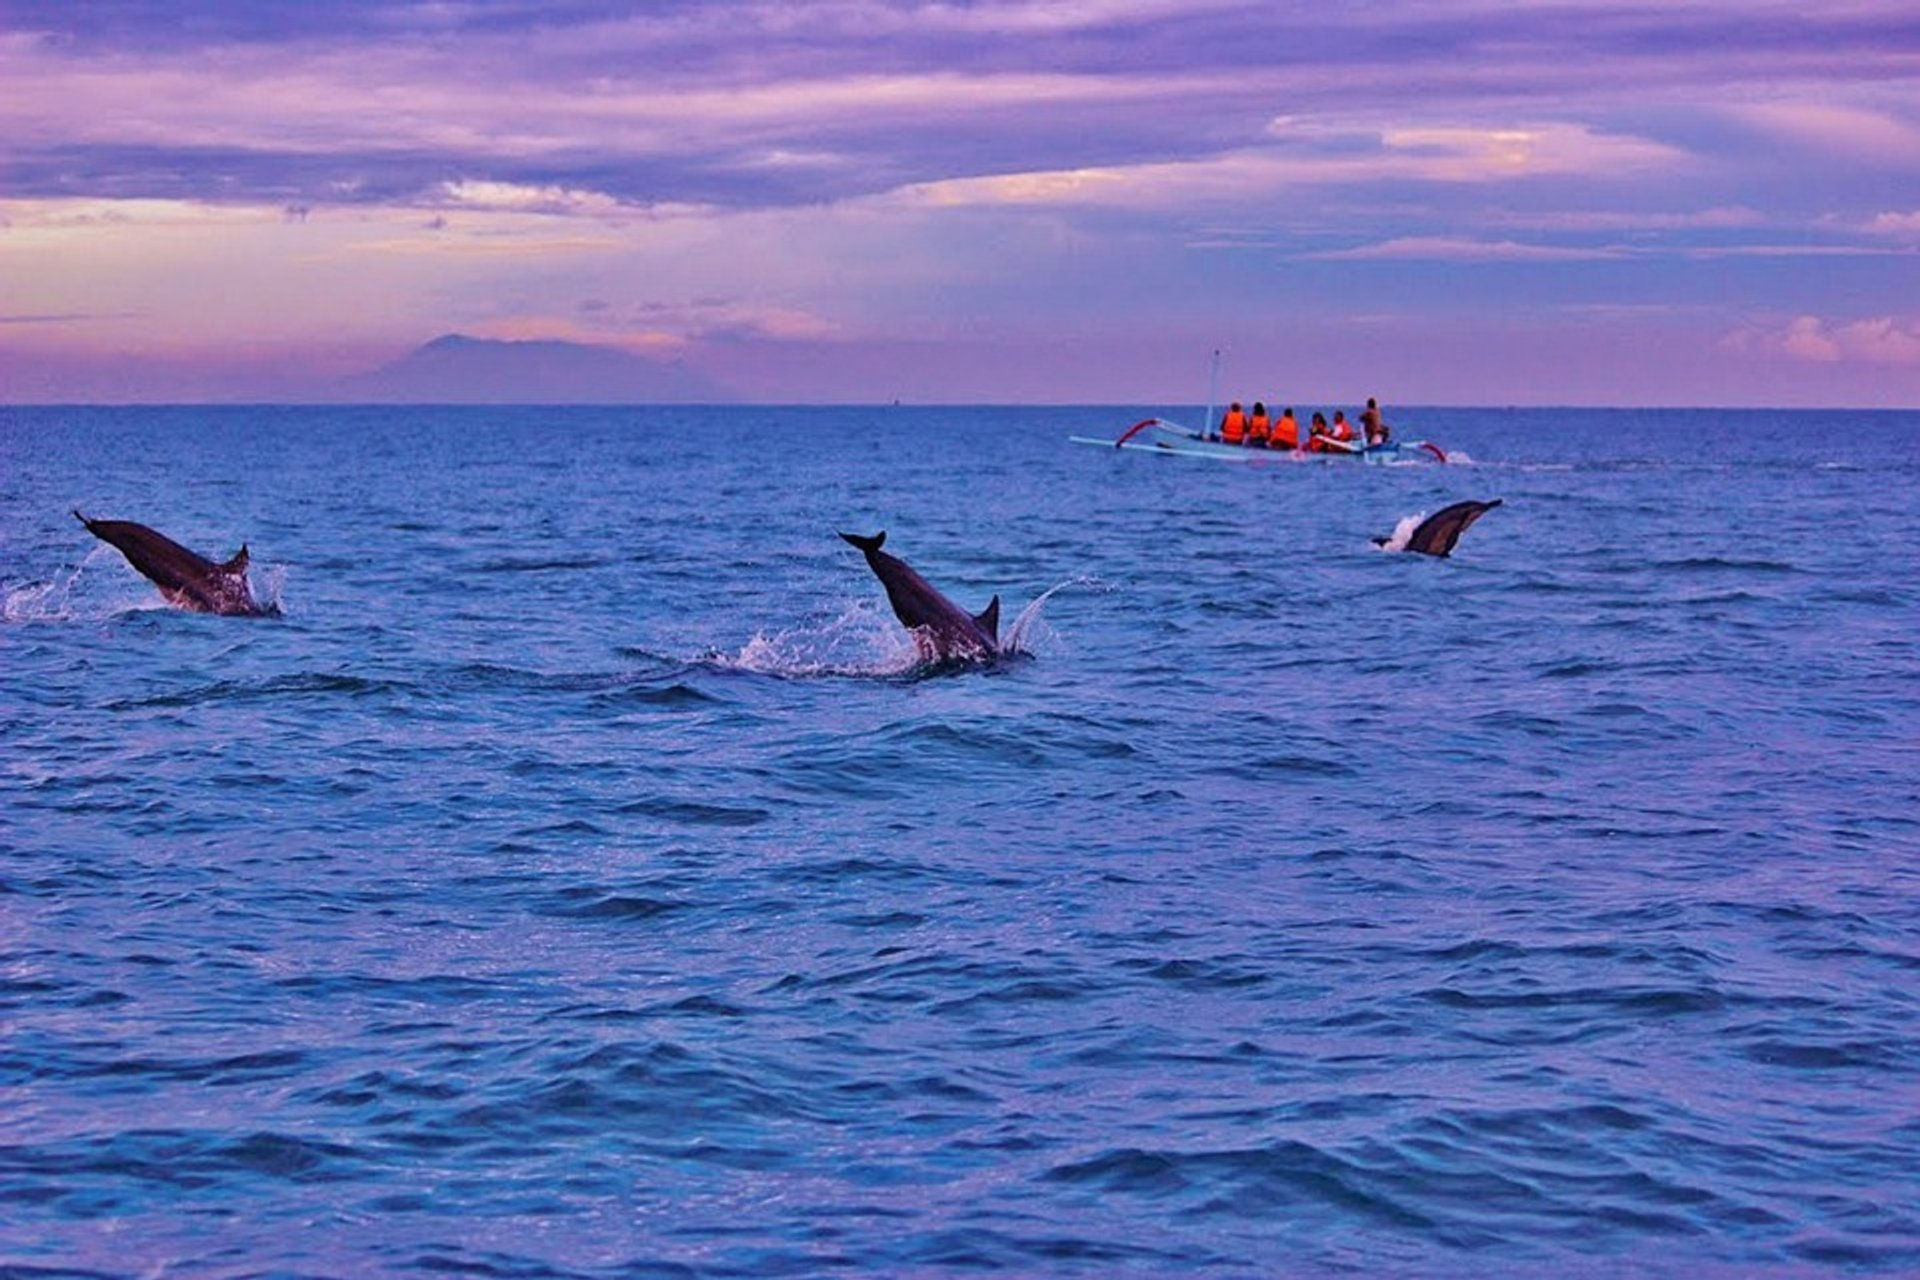 Best time for Lovina Dolphin Watching in Bali 2020